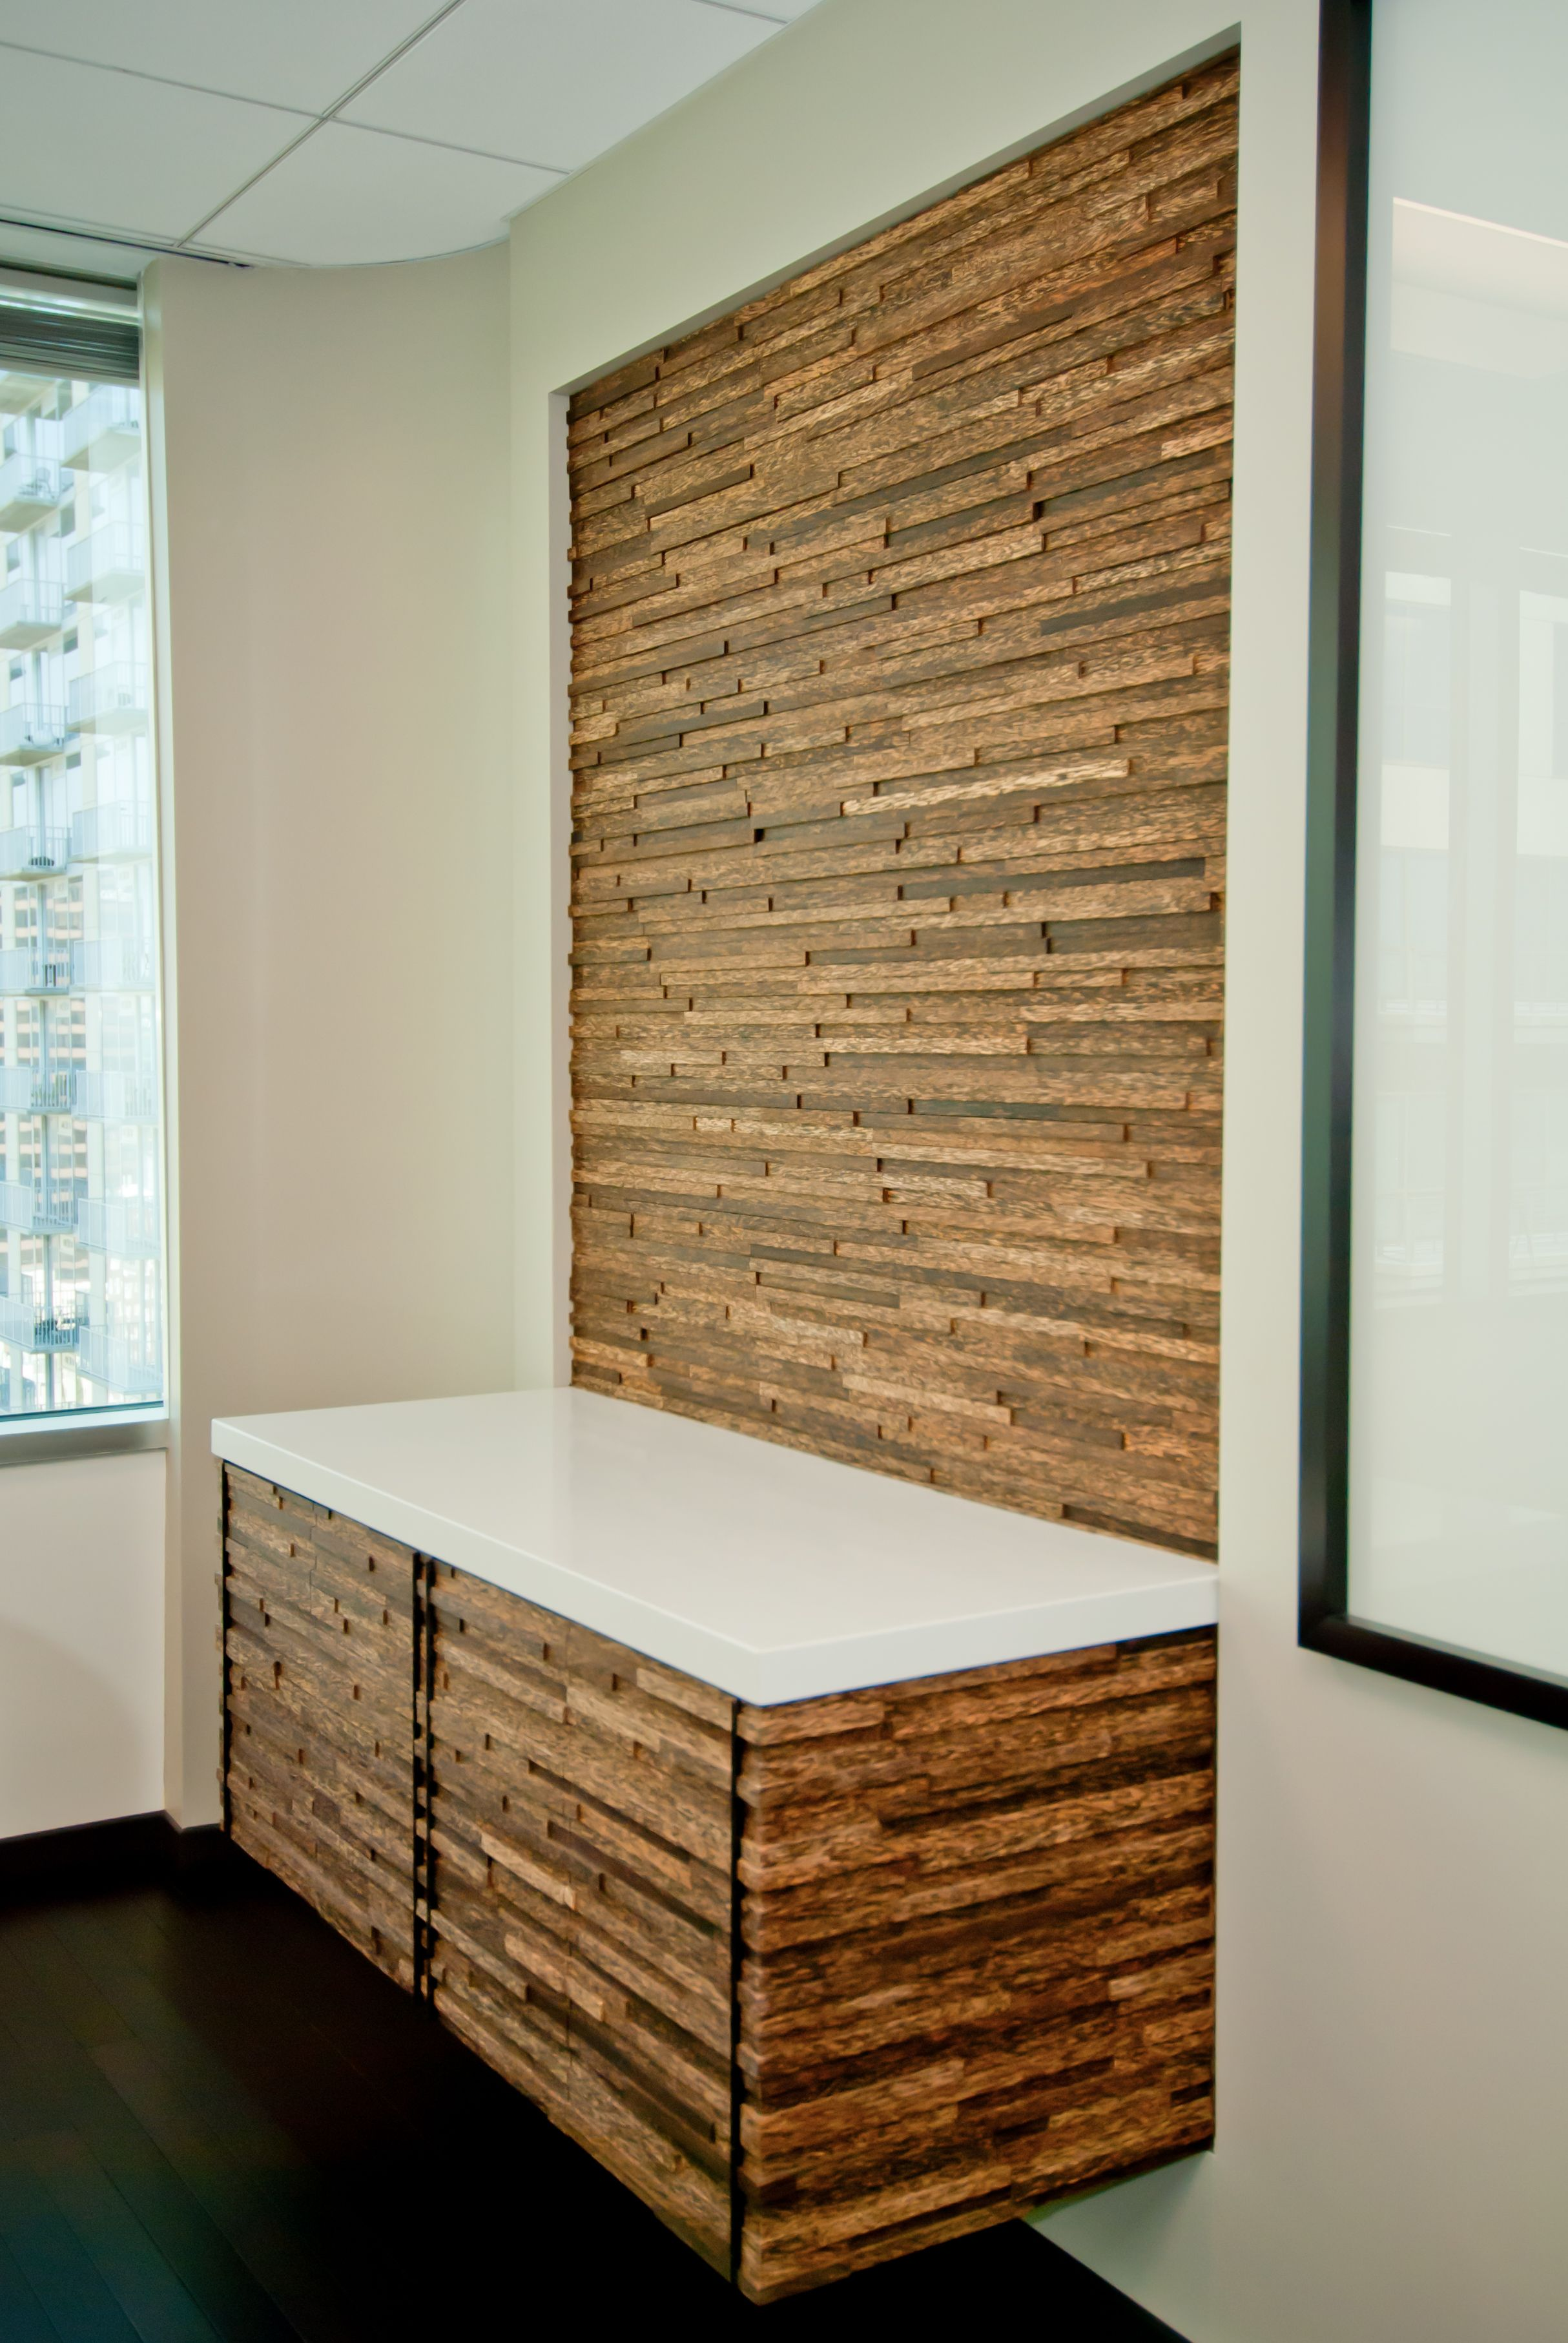 Deco Palm Panel System Wooden Wall Panels Wooden Walls Wall Panels